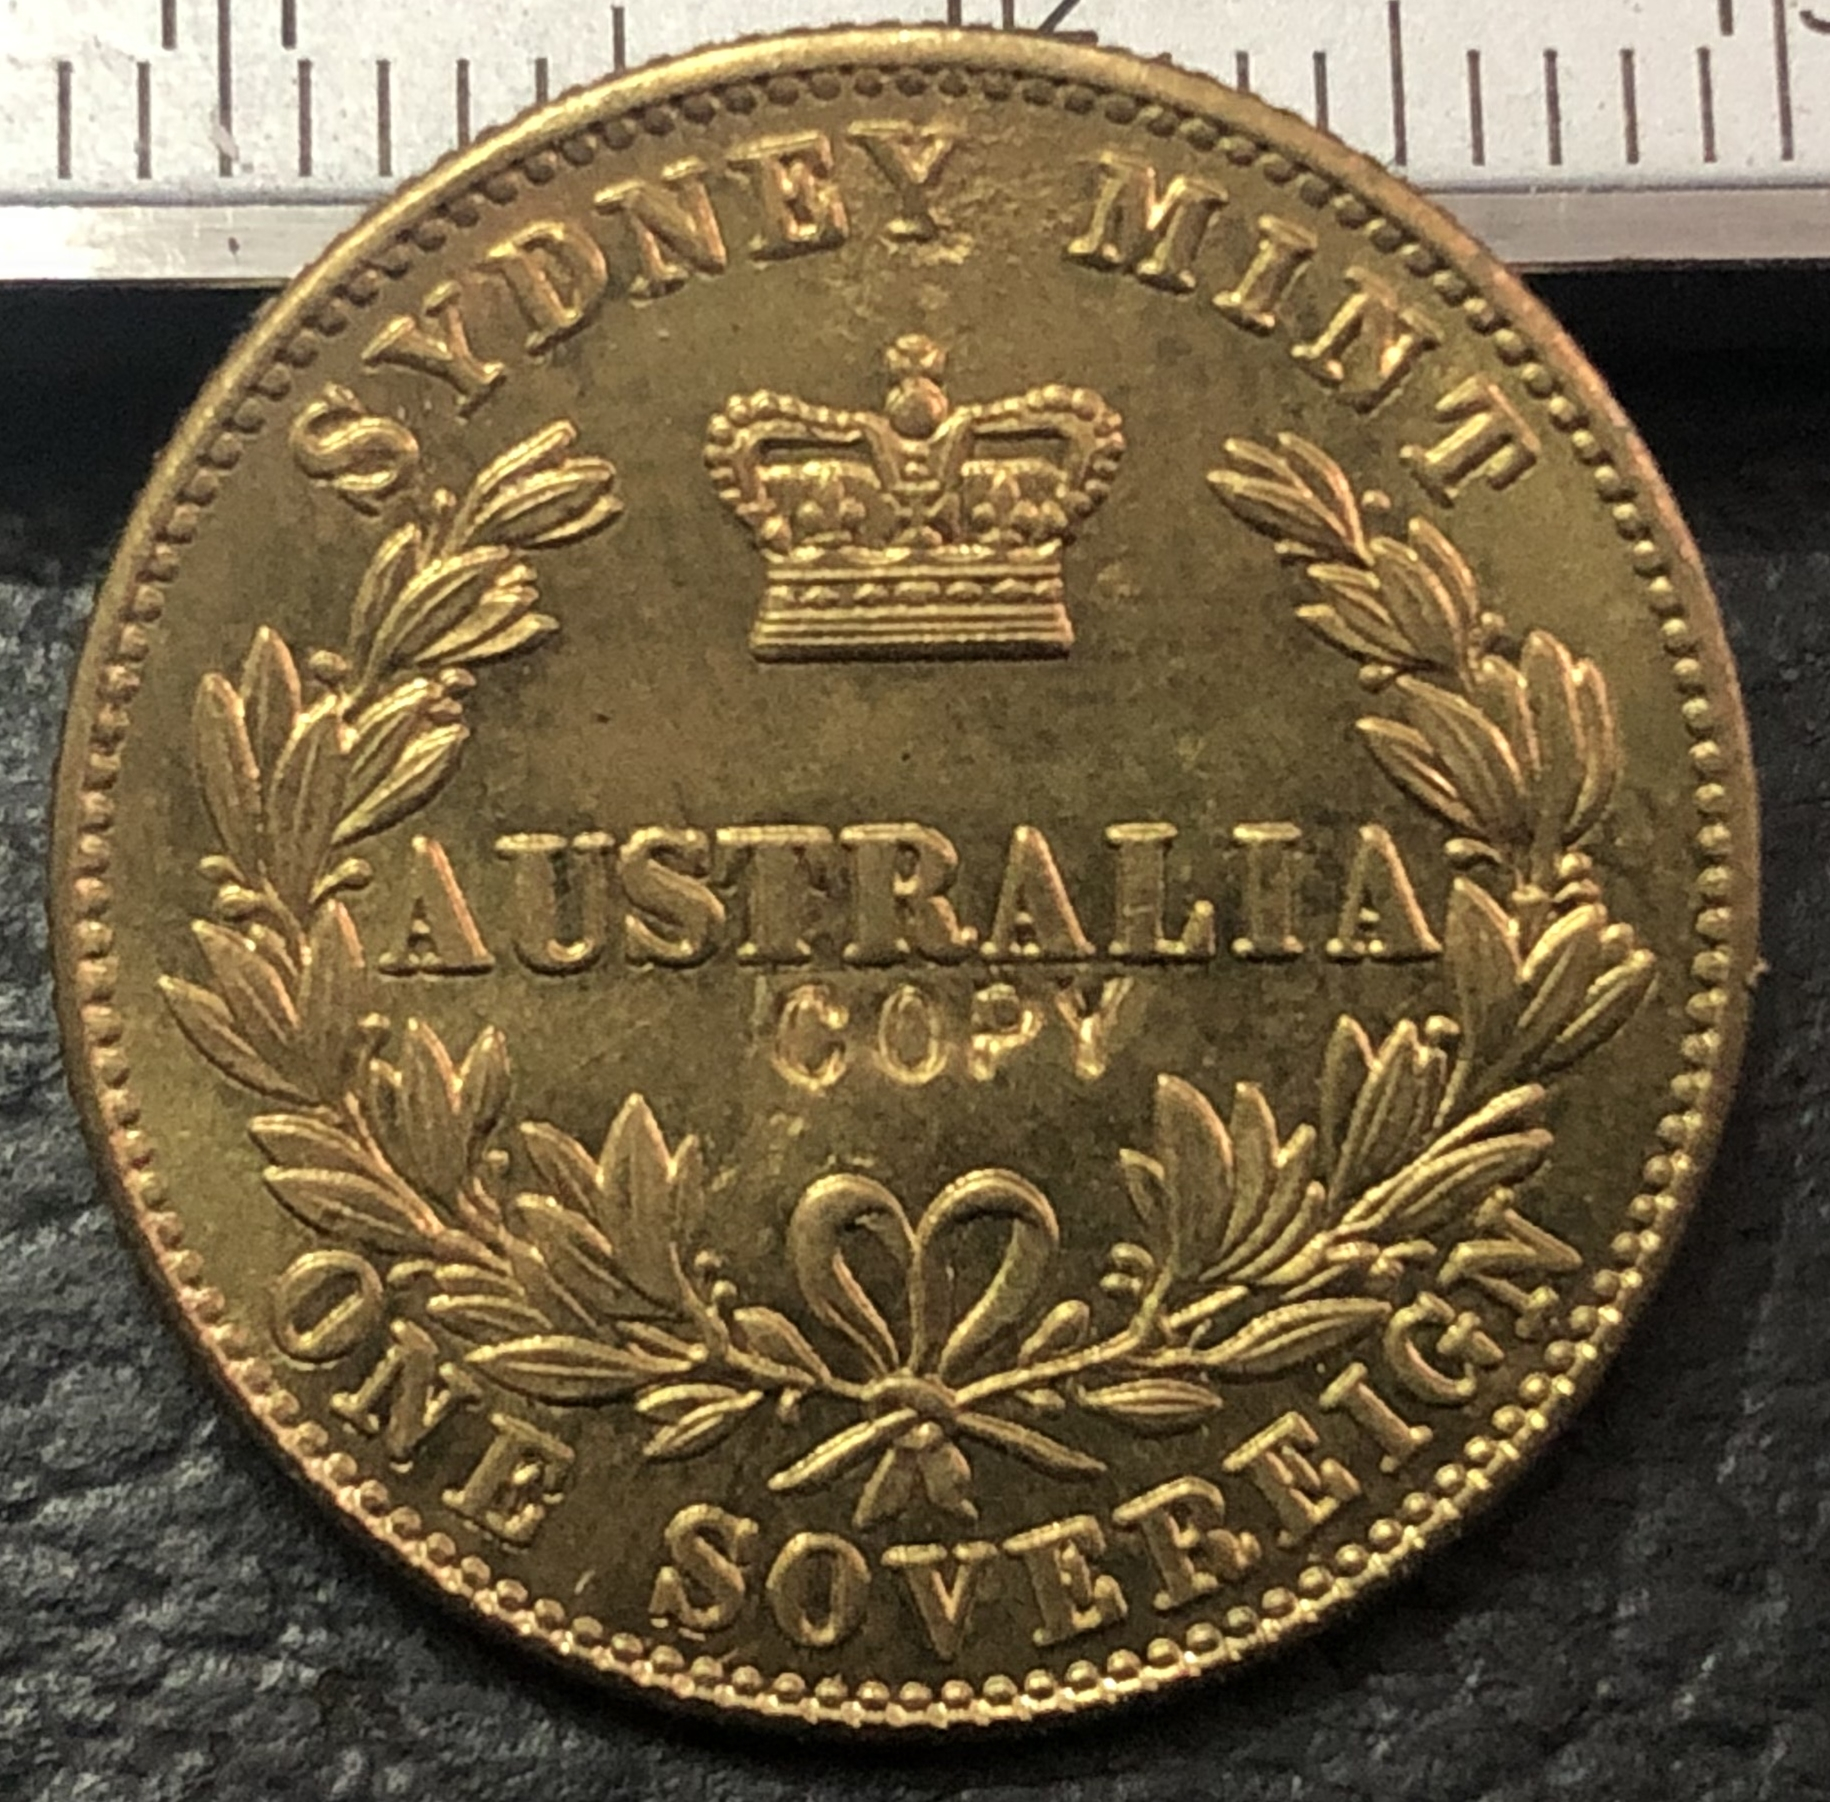 SCARCE 1975 50 cent proof coin Only 23,021 made Brilliant coin in 2x2 holder.